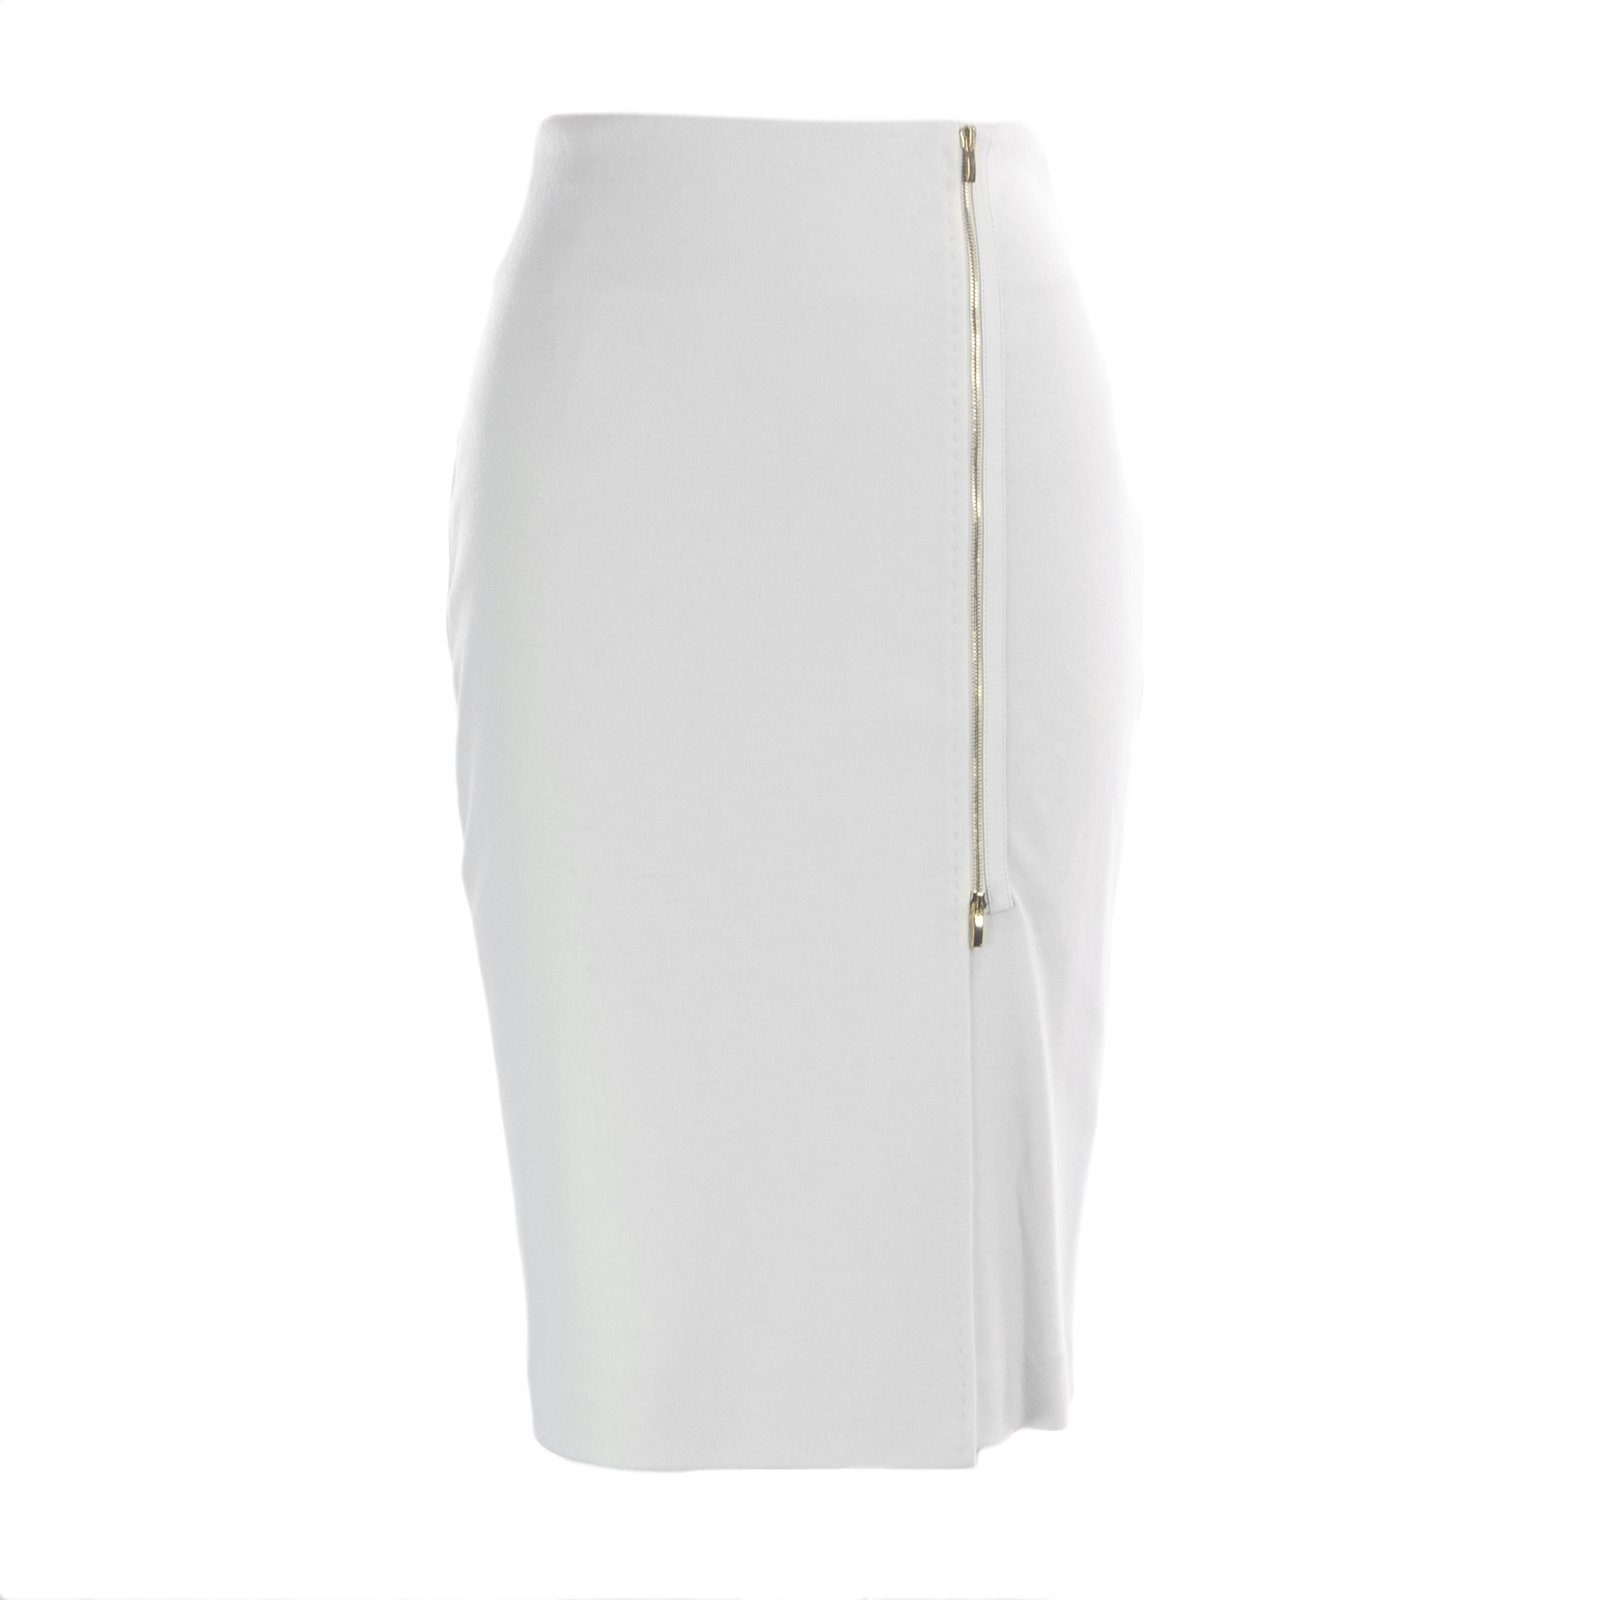 Max Mara Women's Visita Front Zip Accent Pencil Skirt Sz 4 White